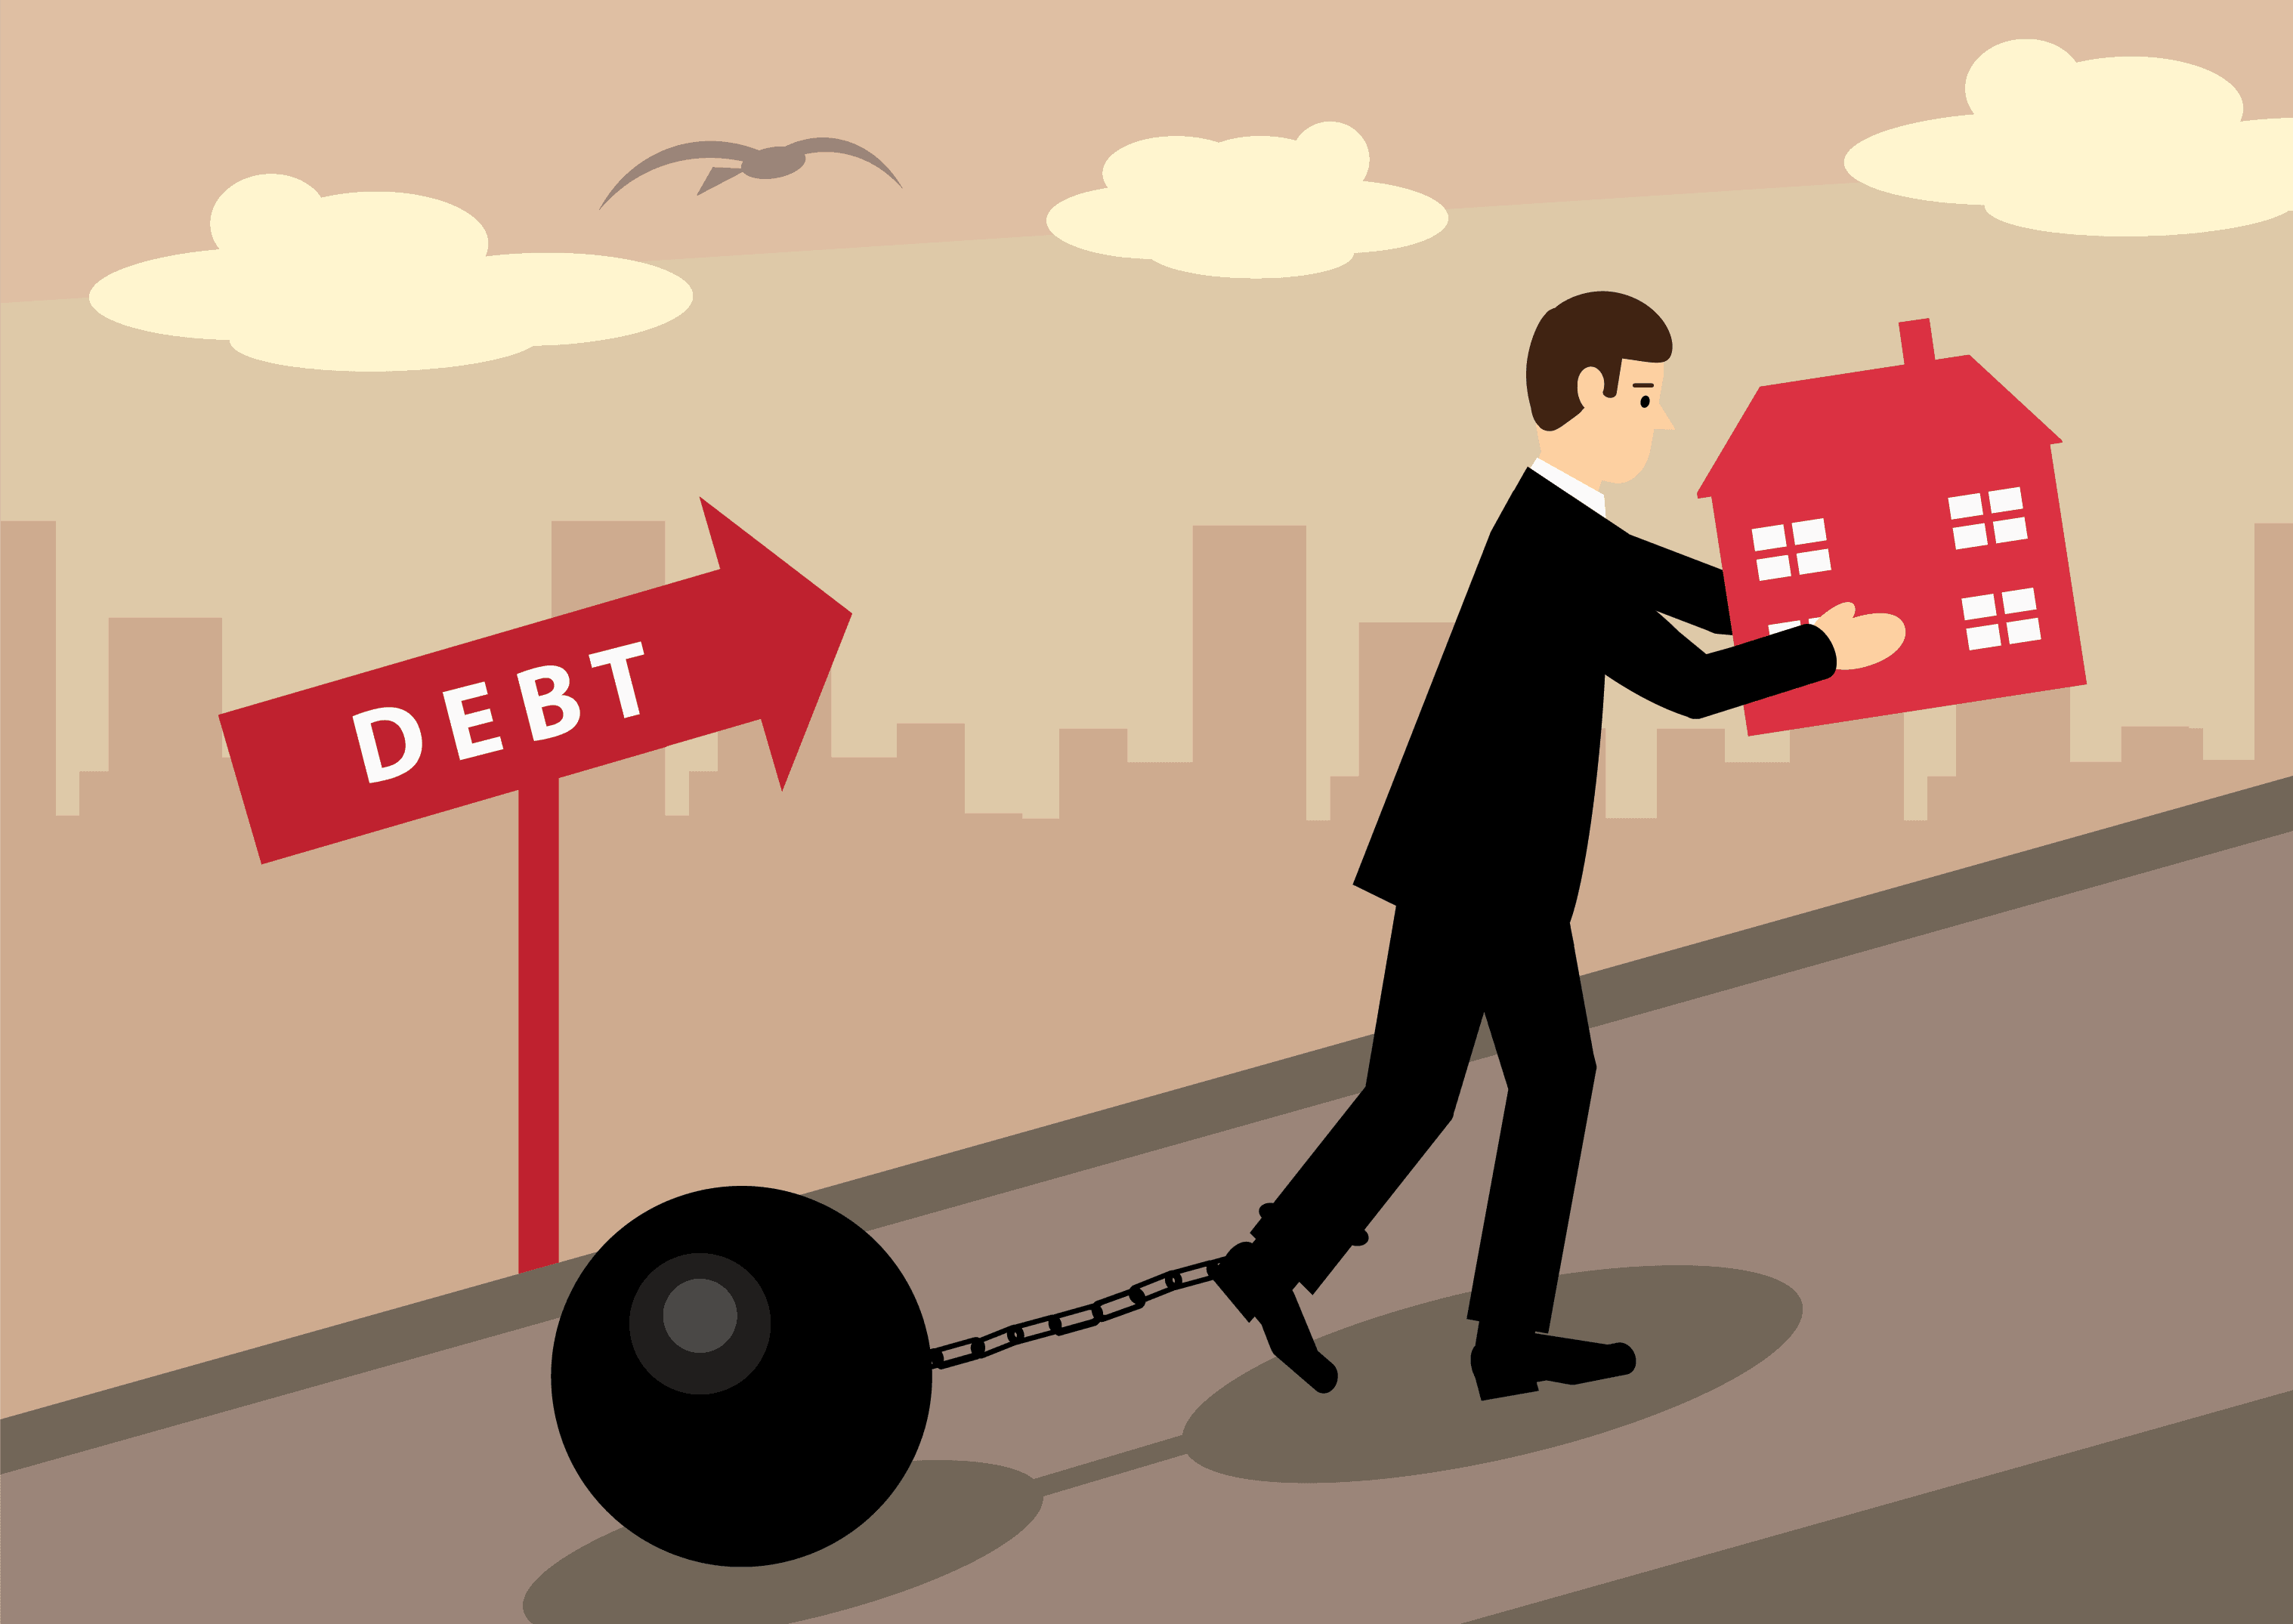 Can a partial payment force a creditor to cease collection efforts or halt a lawsuit to collect a debt?